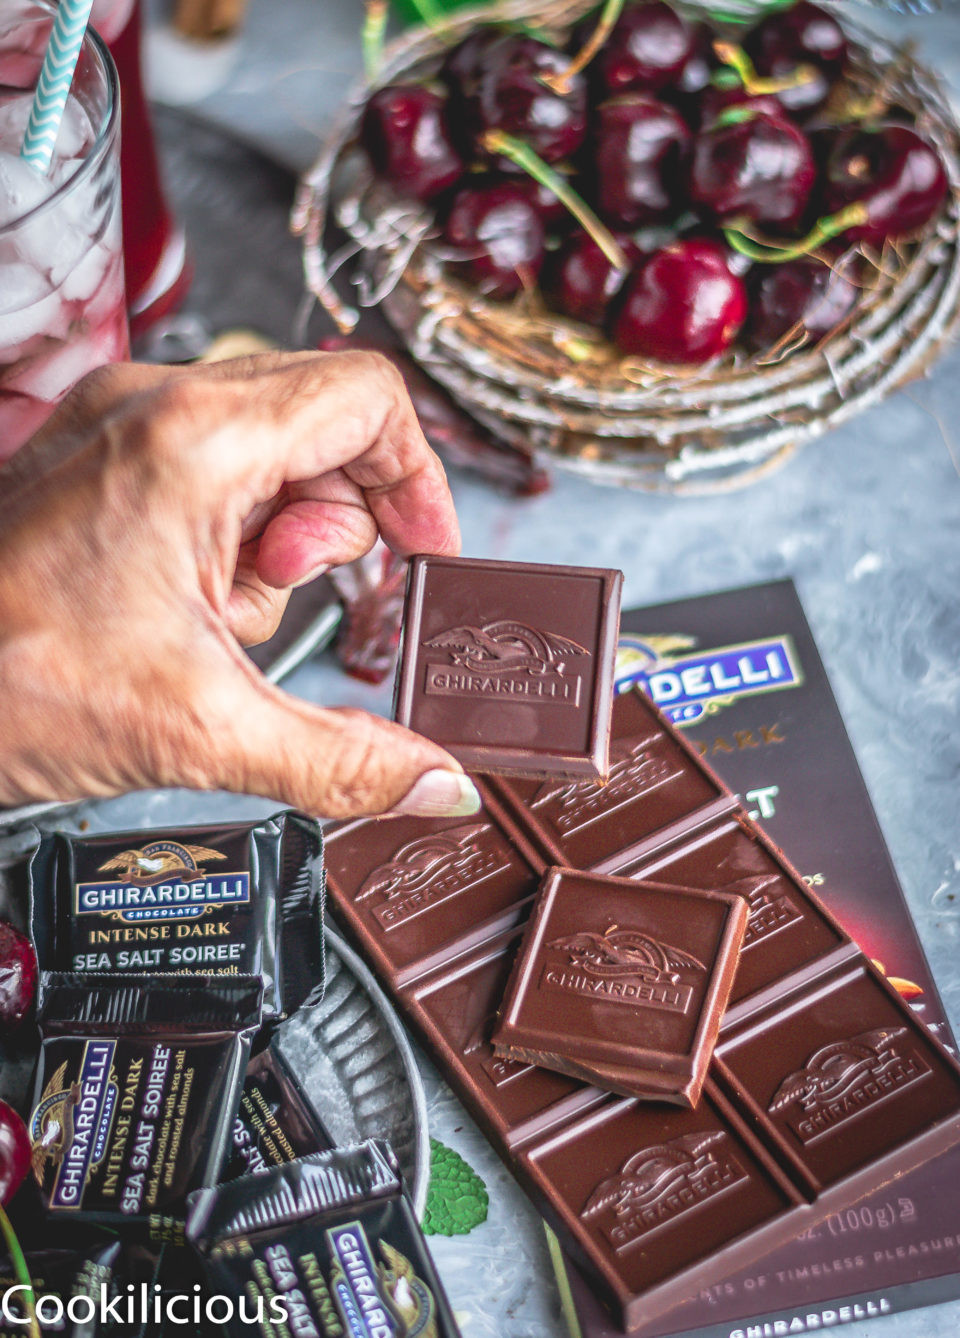 a hand holding a Ghirardelli Intense Dark chocolate bar